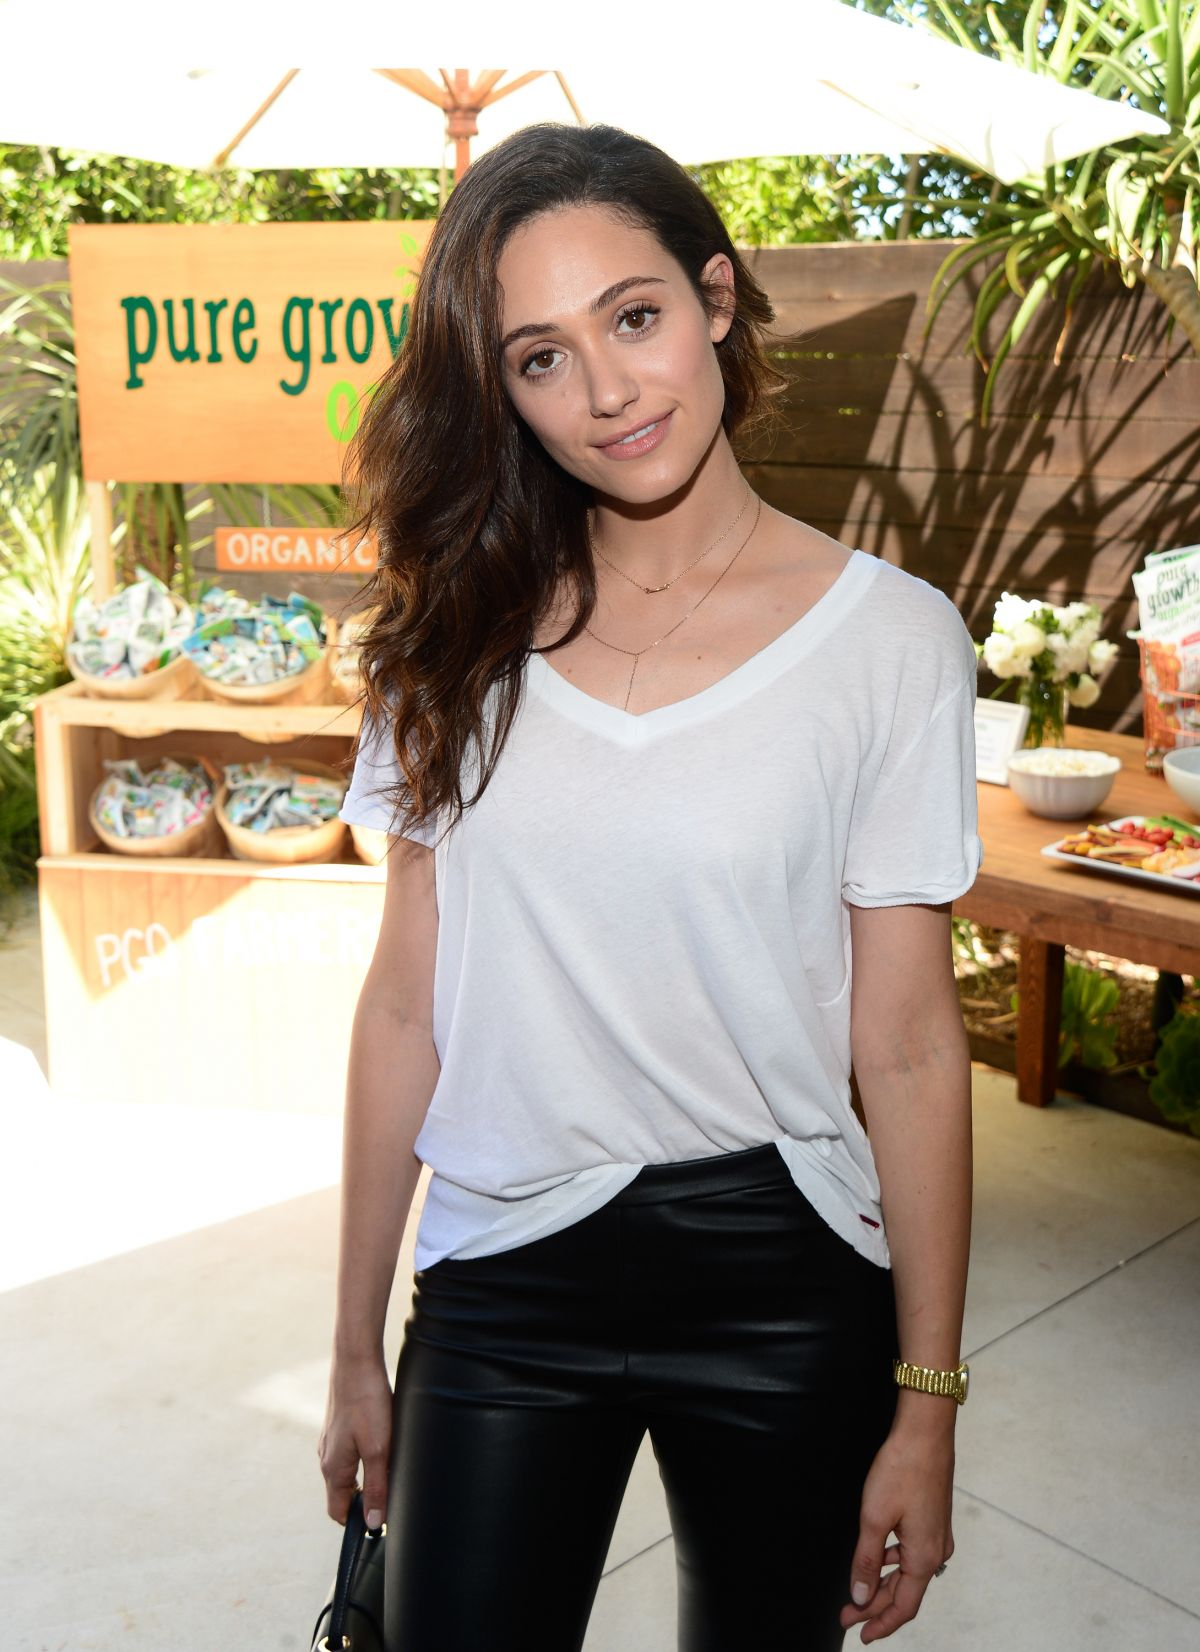 EMMY ROSSUM at N:Philanthropy Give Back Garden Party in Los Angeles 06/28/2017